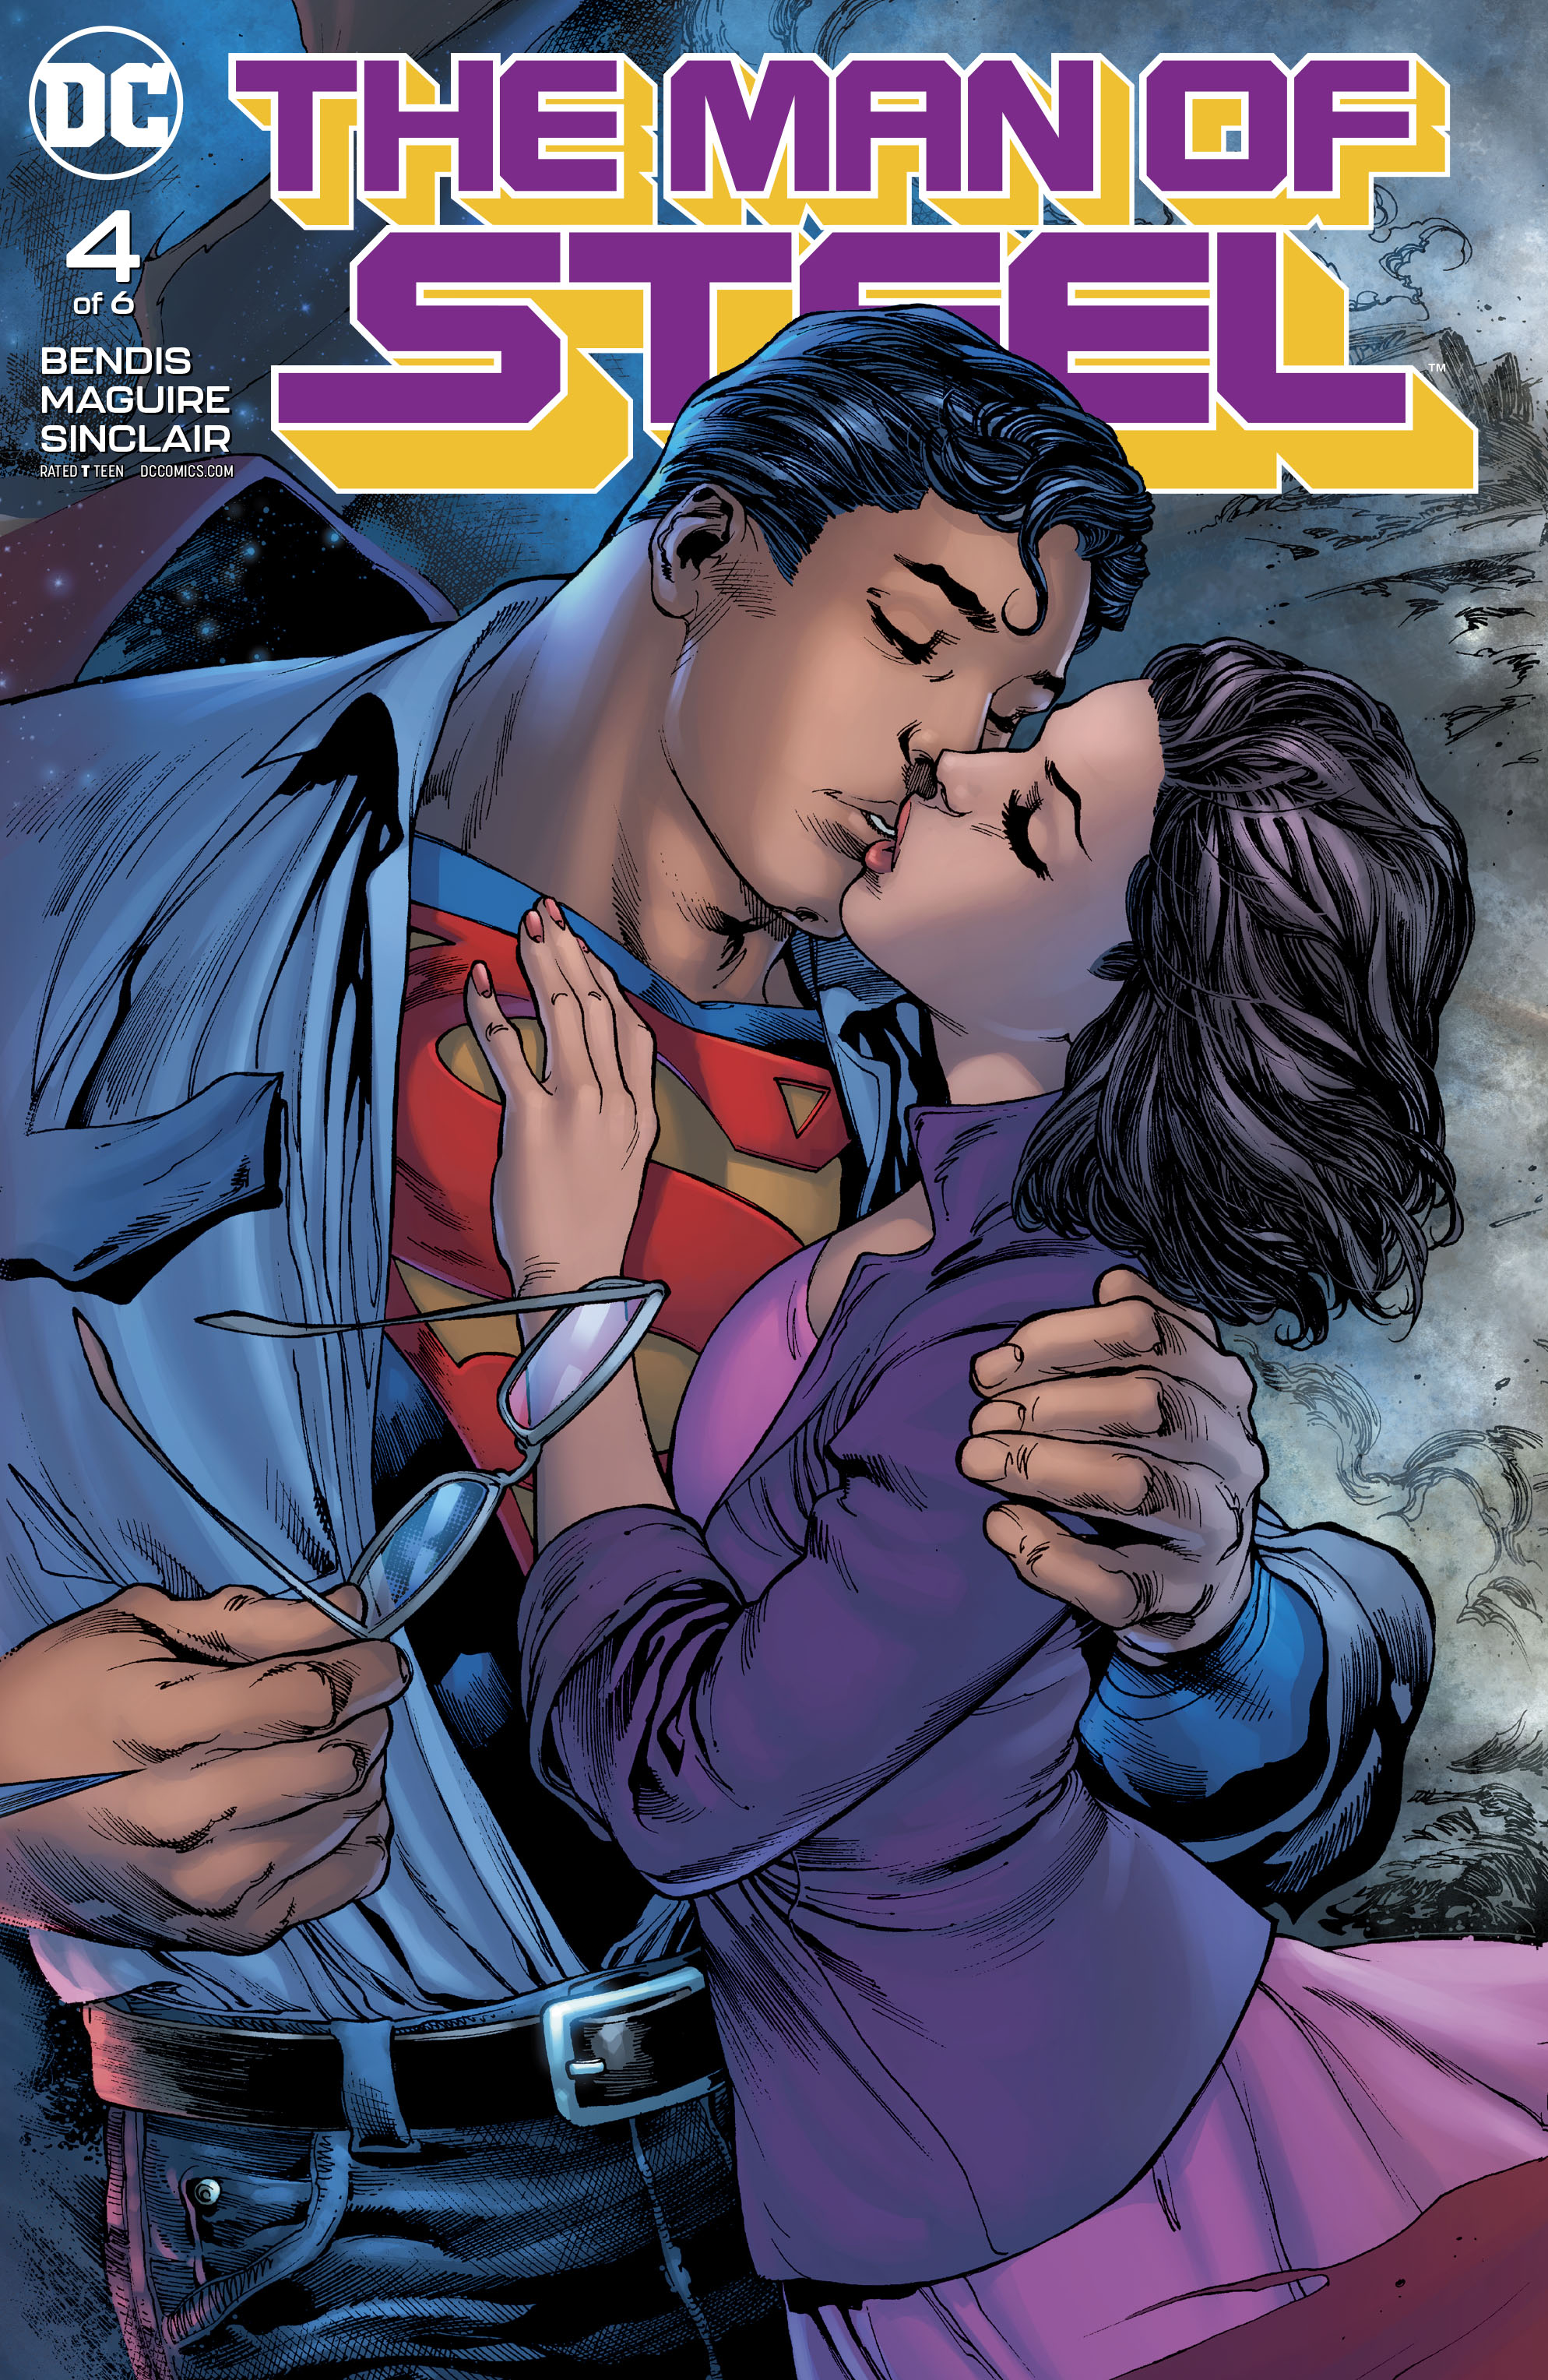 The Man of Steel #4